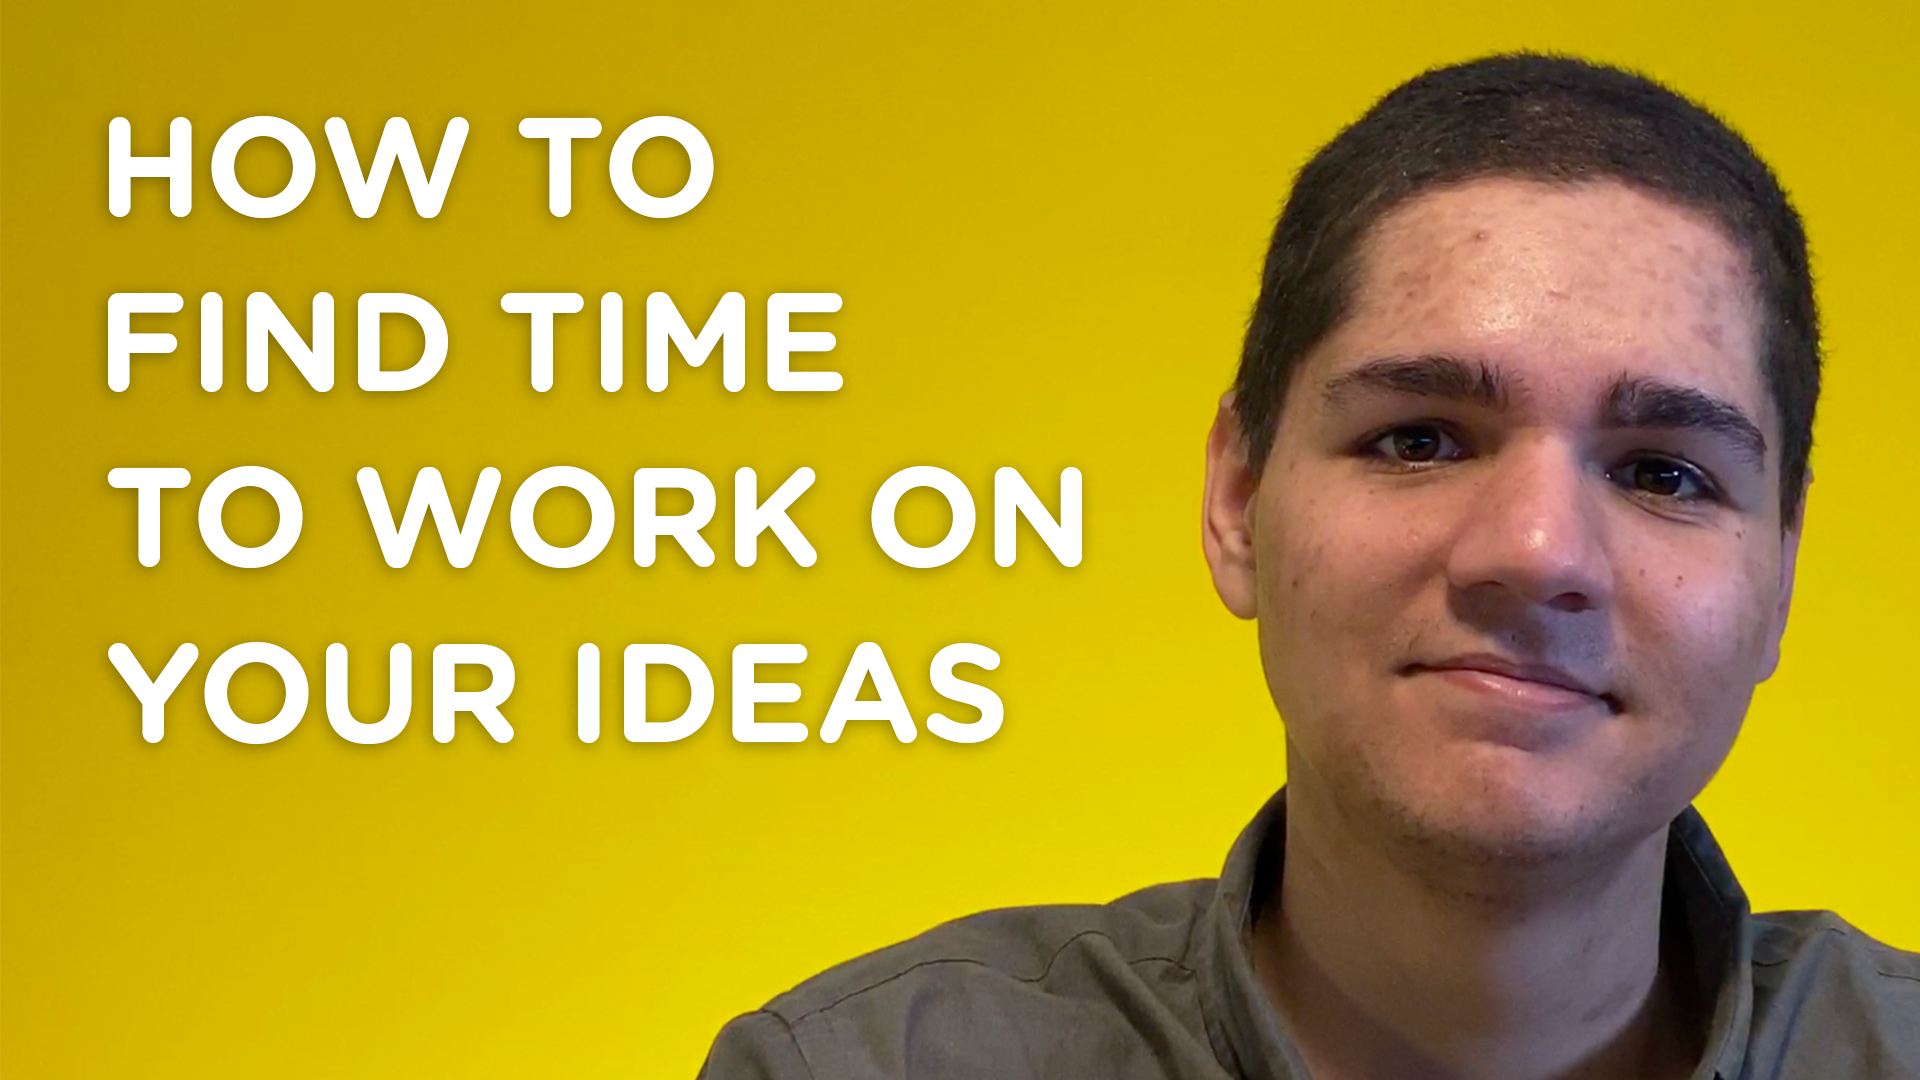 How to Find Time to Work on Your Ideas